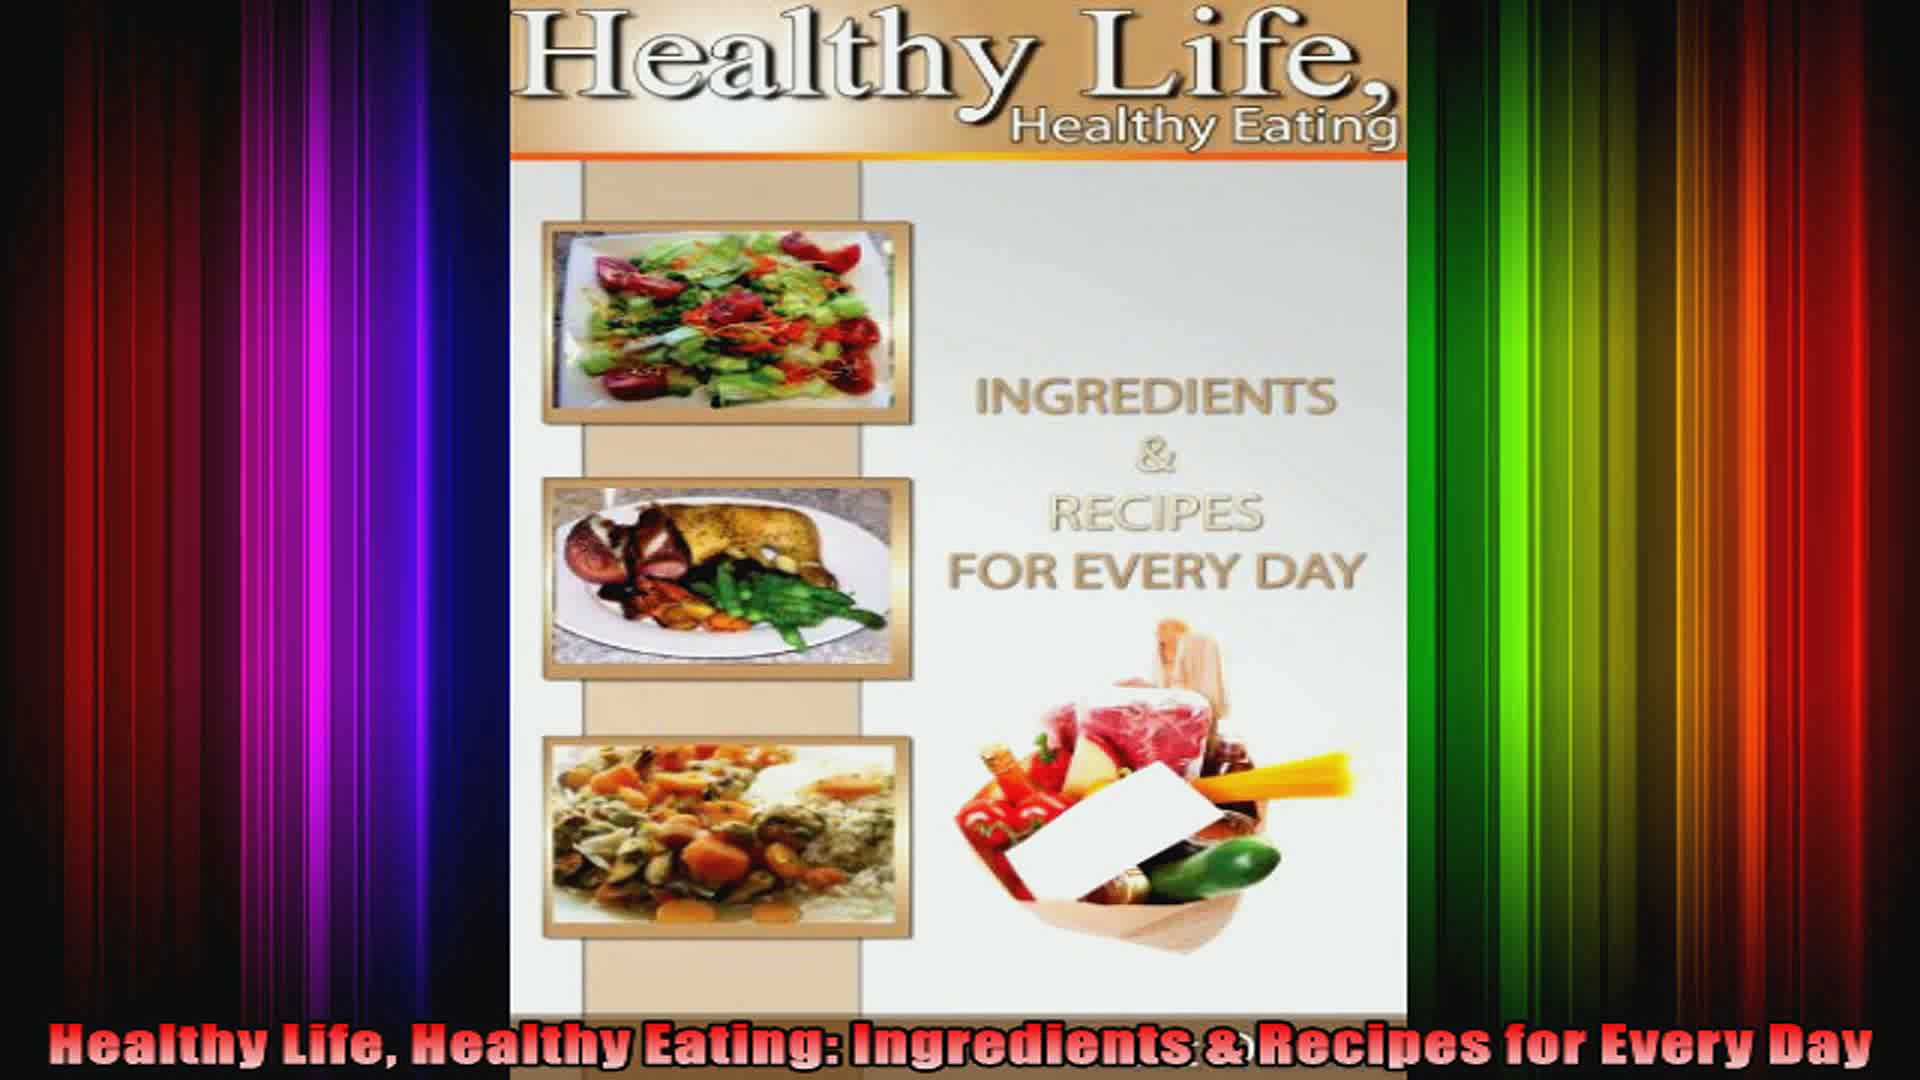 Healthy Life Healthy Eating Ingredients  Recipes for Every Day